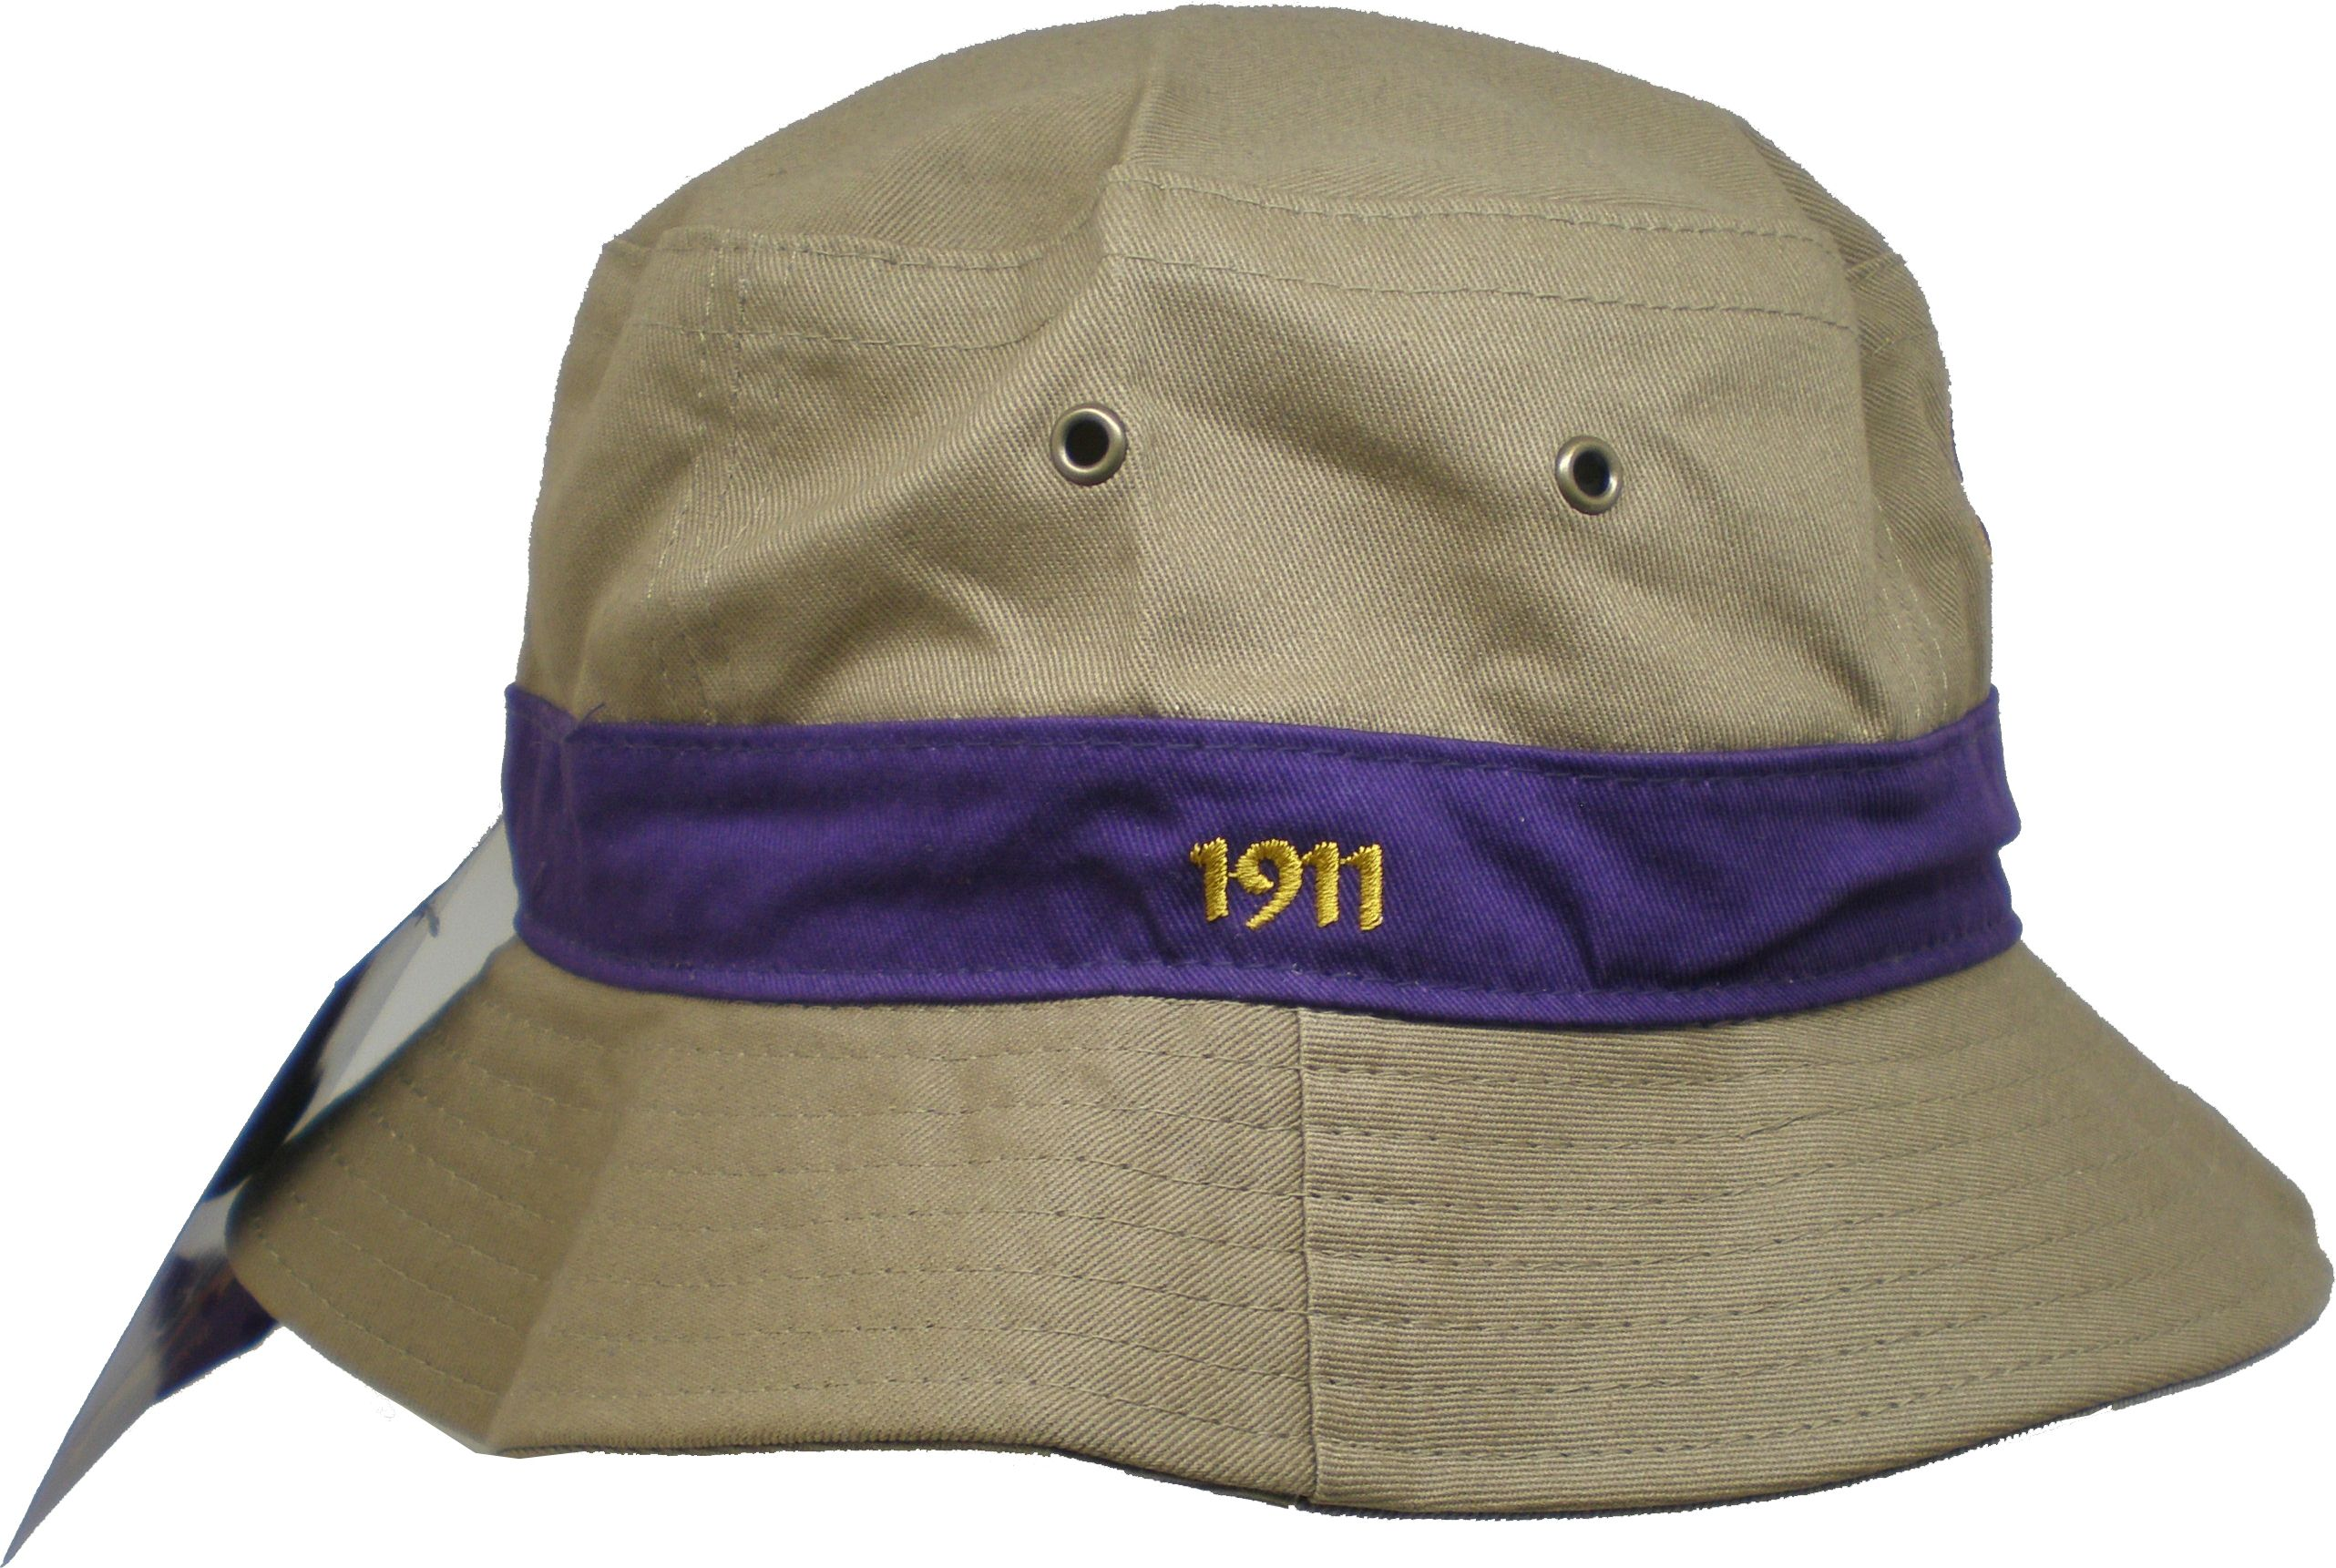 ae93d6f5d Buffalo Dallas Omega Psi Phi Fraternity Mens Floppy Bucket Hat in ...